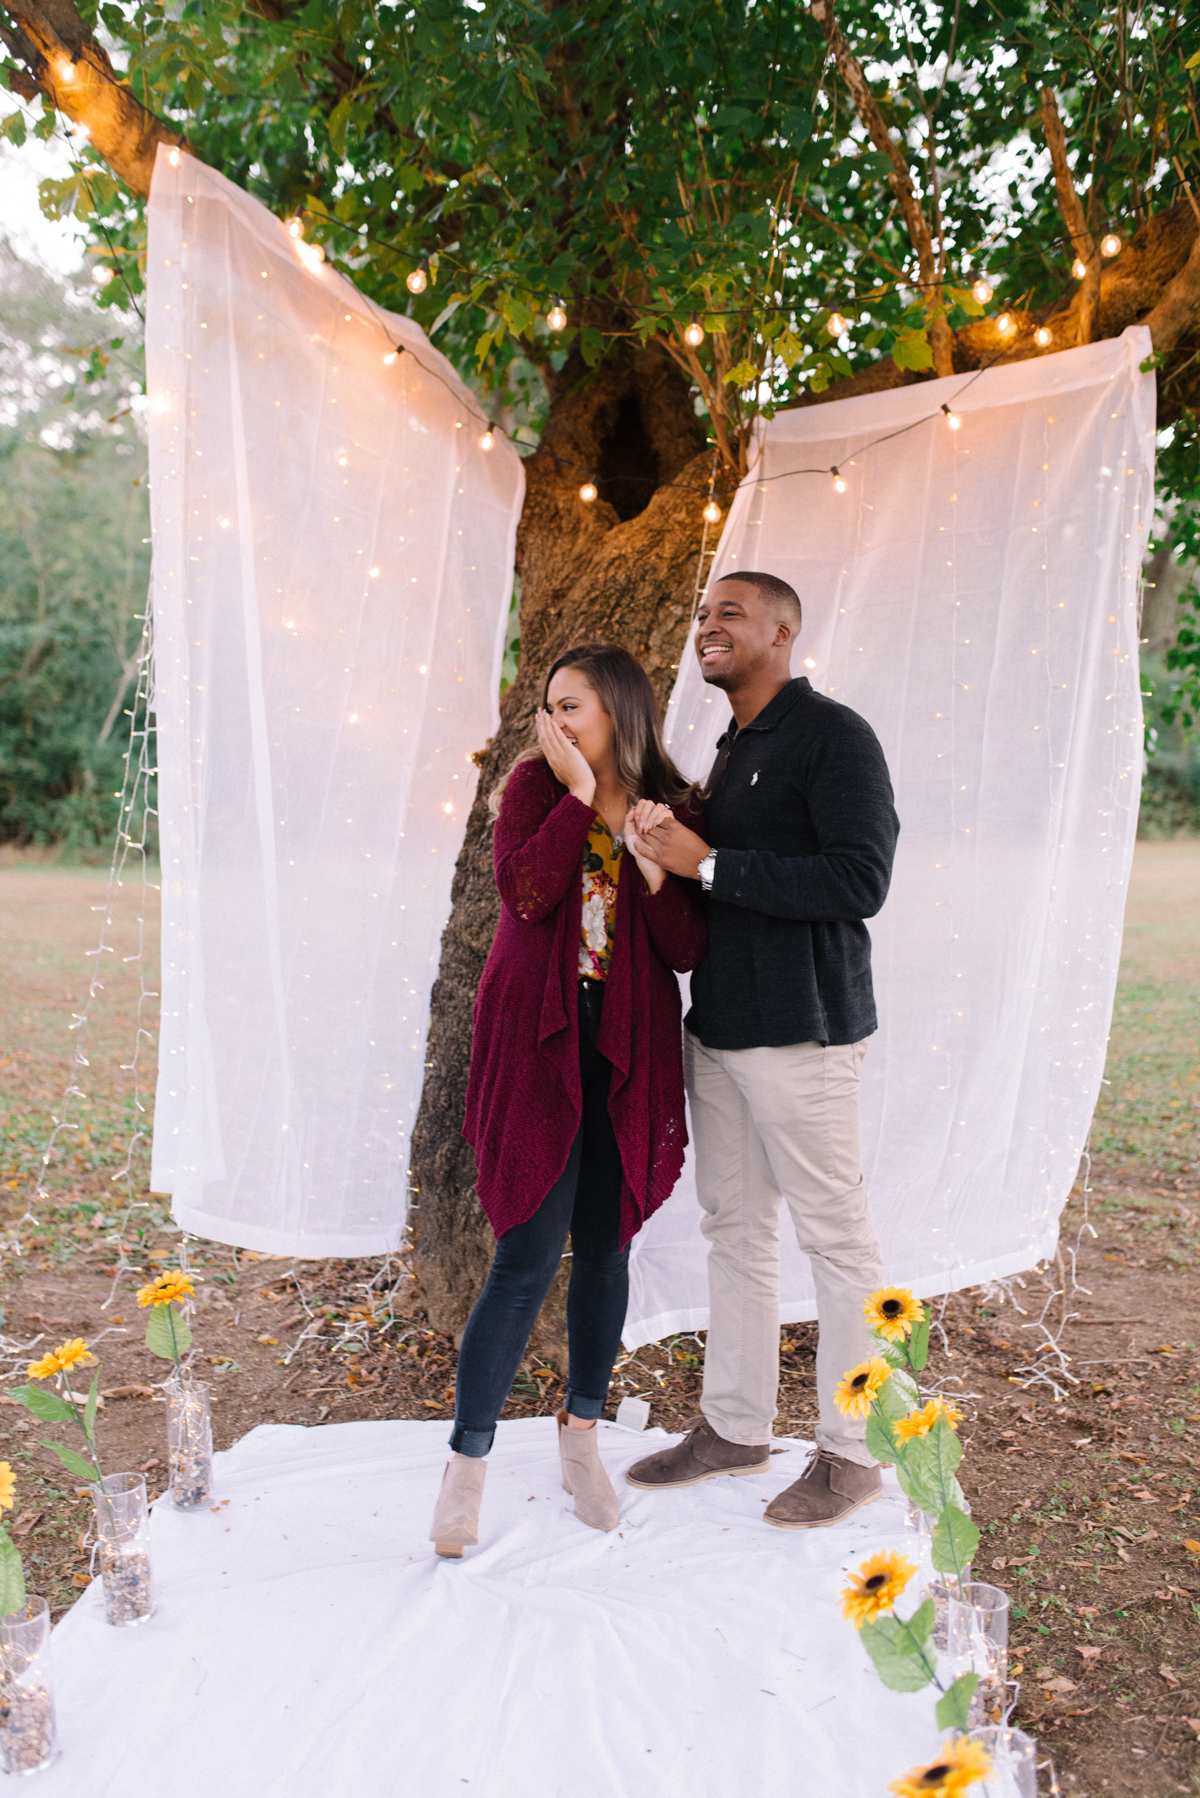 atlanta-engagement-photographer-atlanta-wedding-photographer-trent-david-kat-proposal-preview-13.jpg